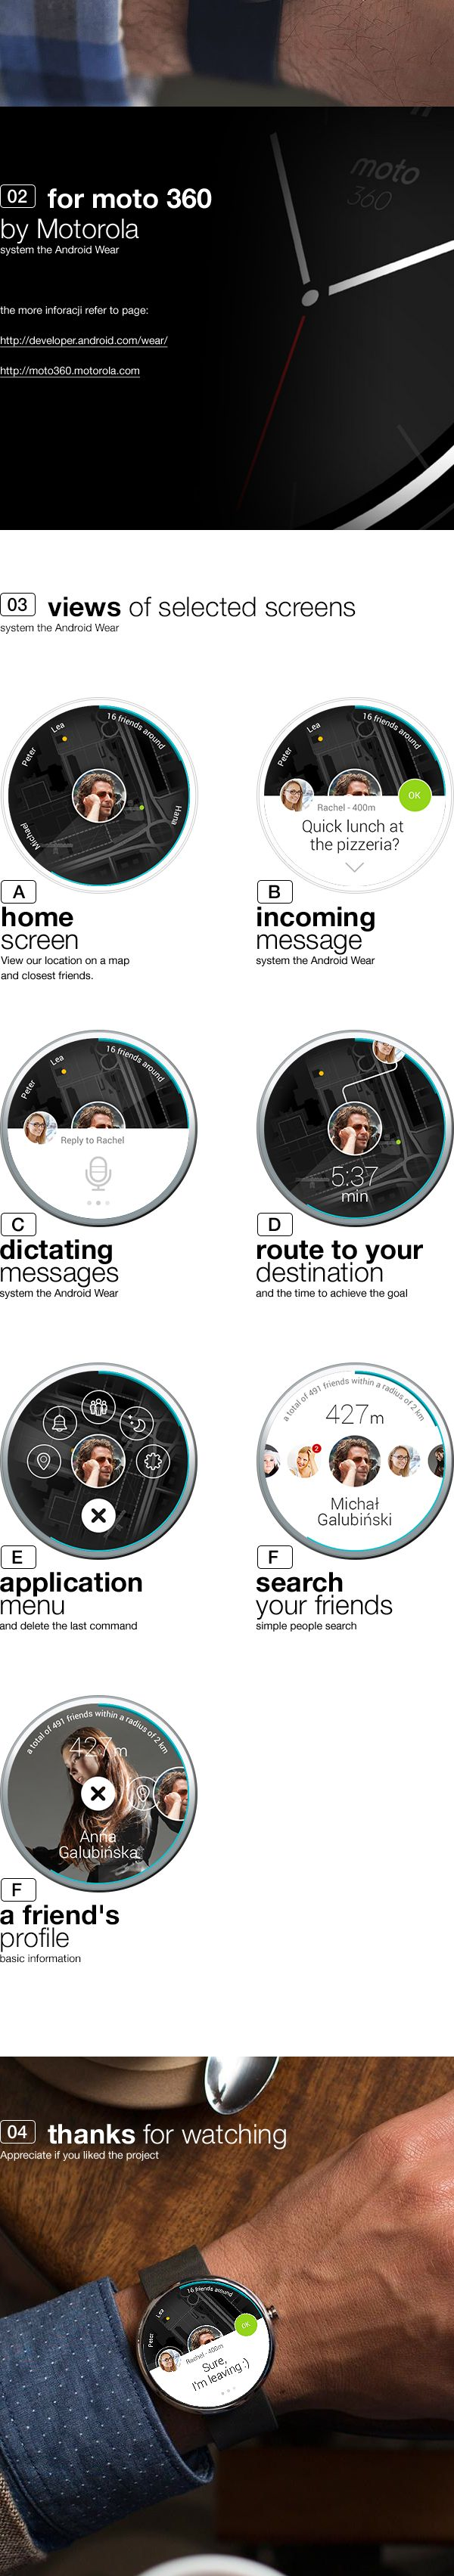 android wear concept app on Behance